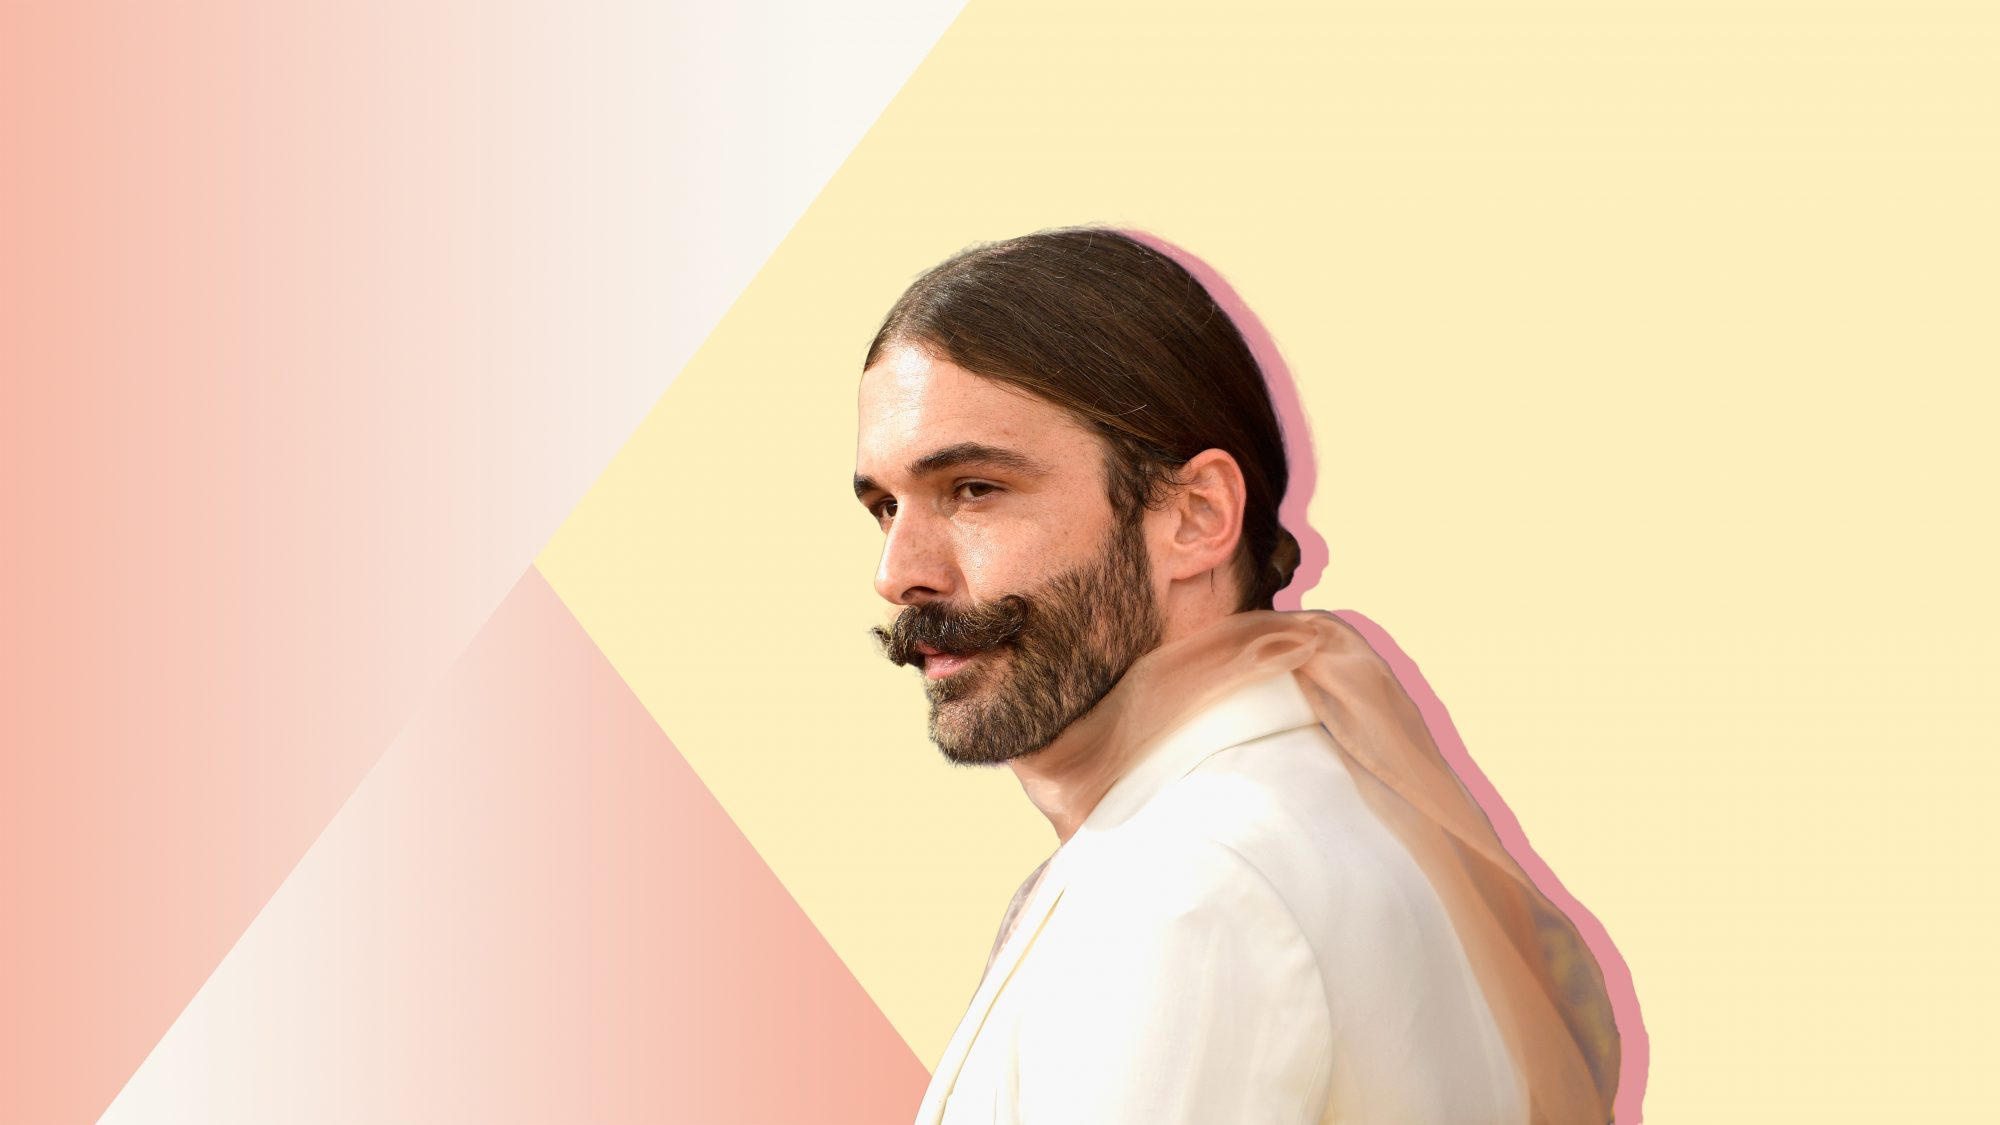 Queer Eye's Jonathan Van Ness Says He Identifies as 'Nonbinary' and 'Gender Nonconforming.' Here's What That Means